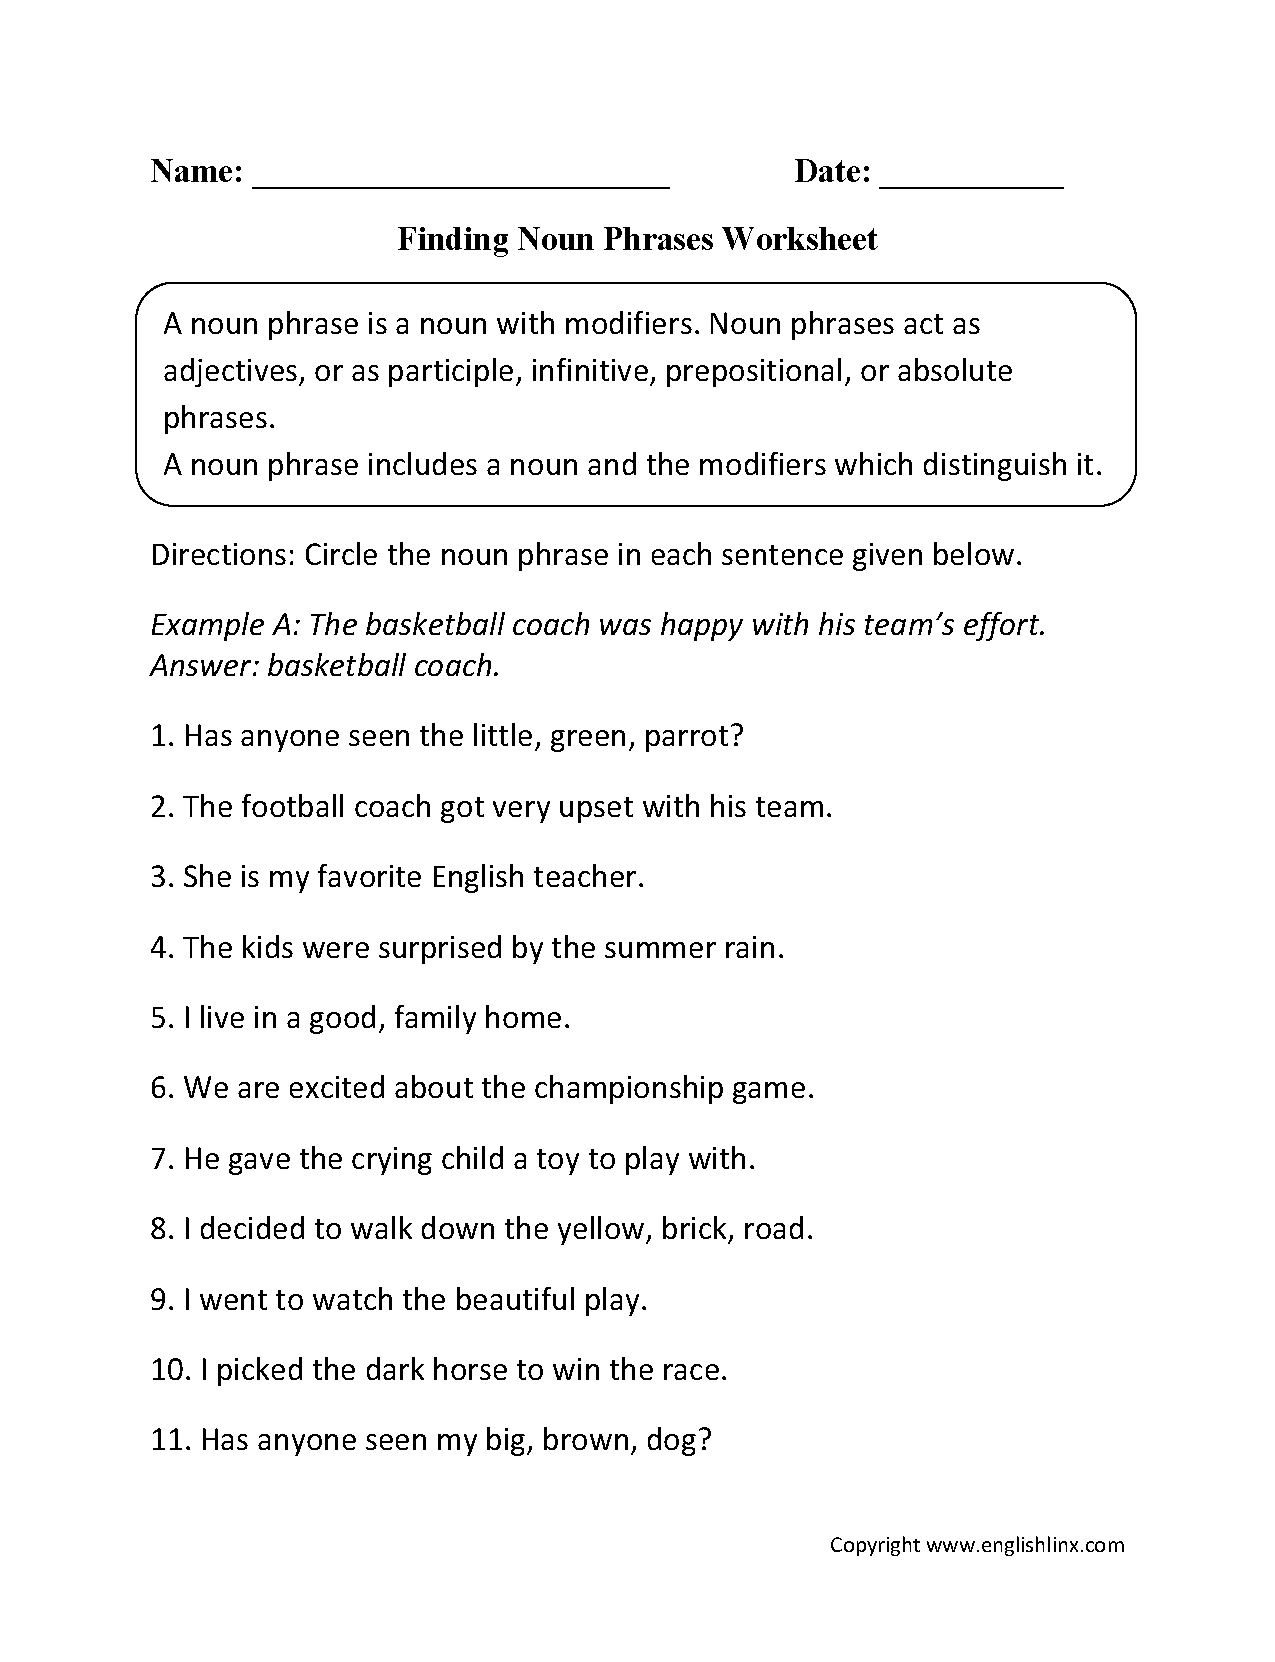 Worksheet Identify The Noun Worksheet nouns worksheets noun phrases finding worksheets